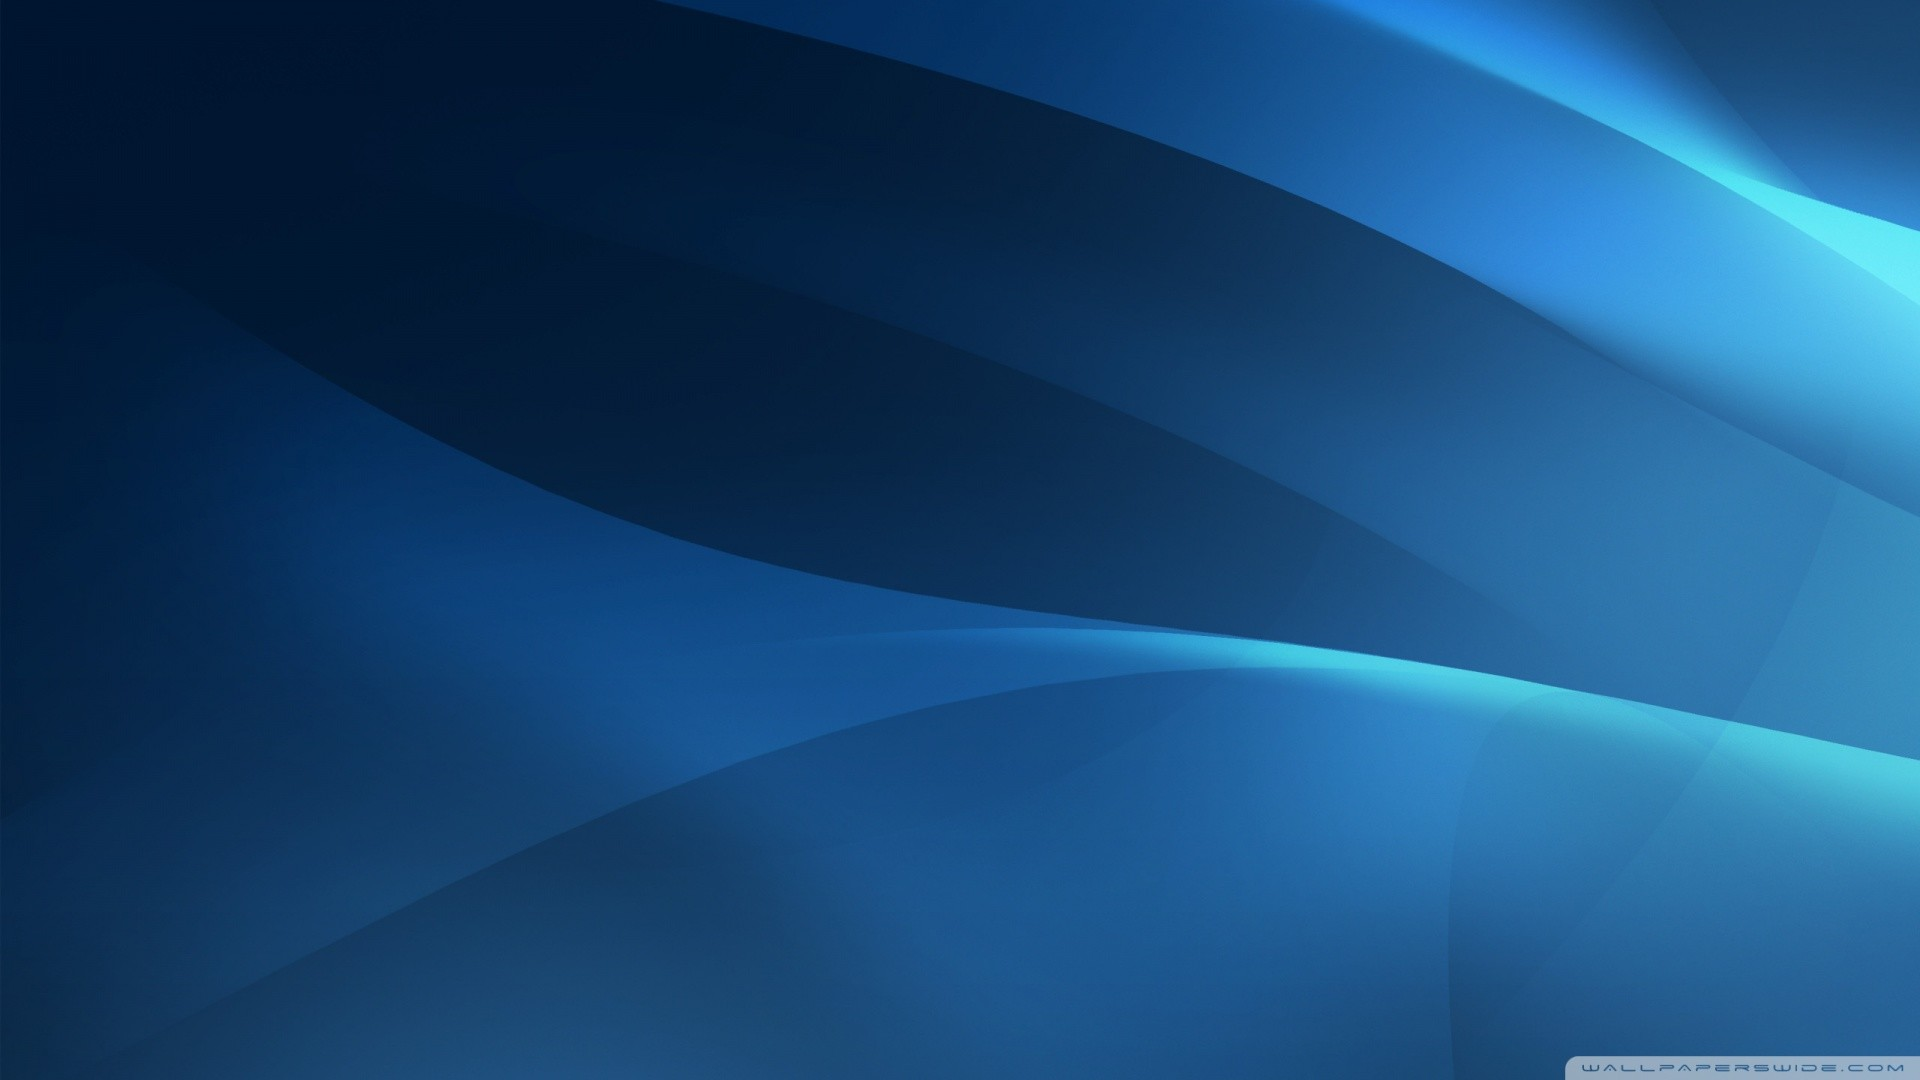 1920x1080 Download Abstract Nature Blue Wallpaper  | Full HD Wallpapers